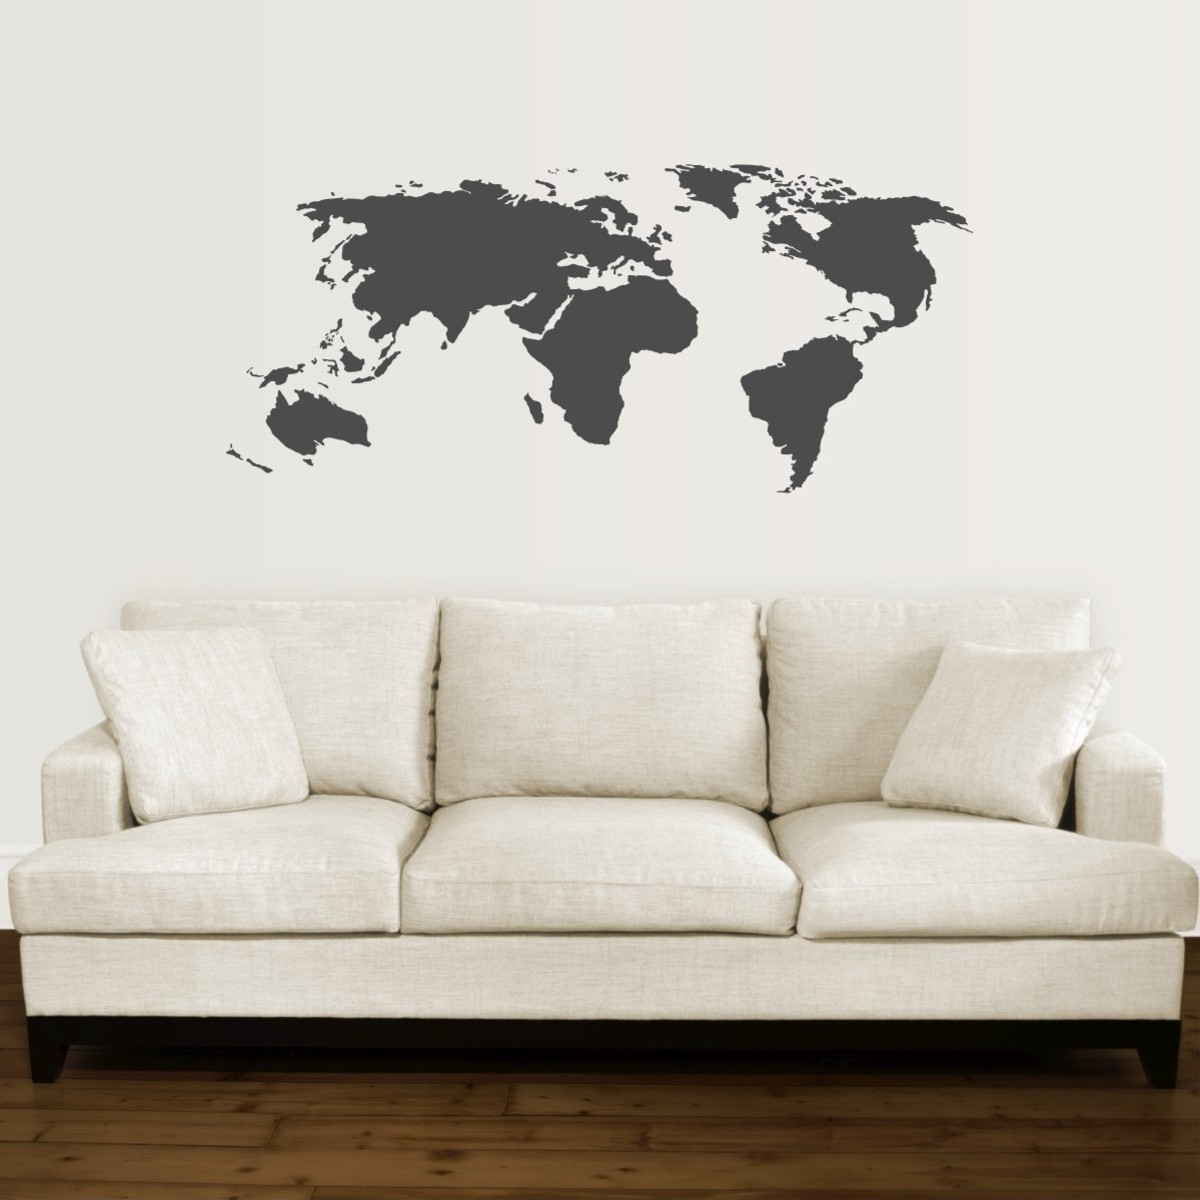 Fashionable 17 Cool Ideas For World Map Wall Art – Live Diy Ideas Pertaining To World Map Wall Art (View 4 of 15)